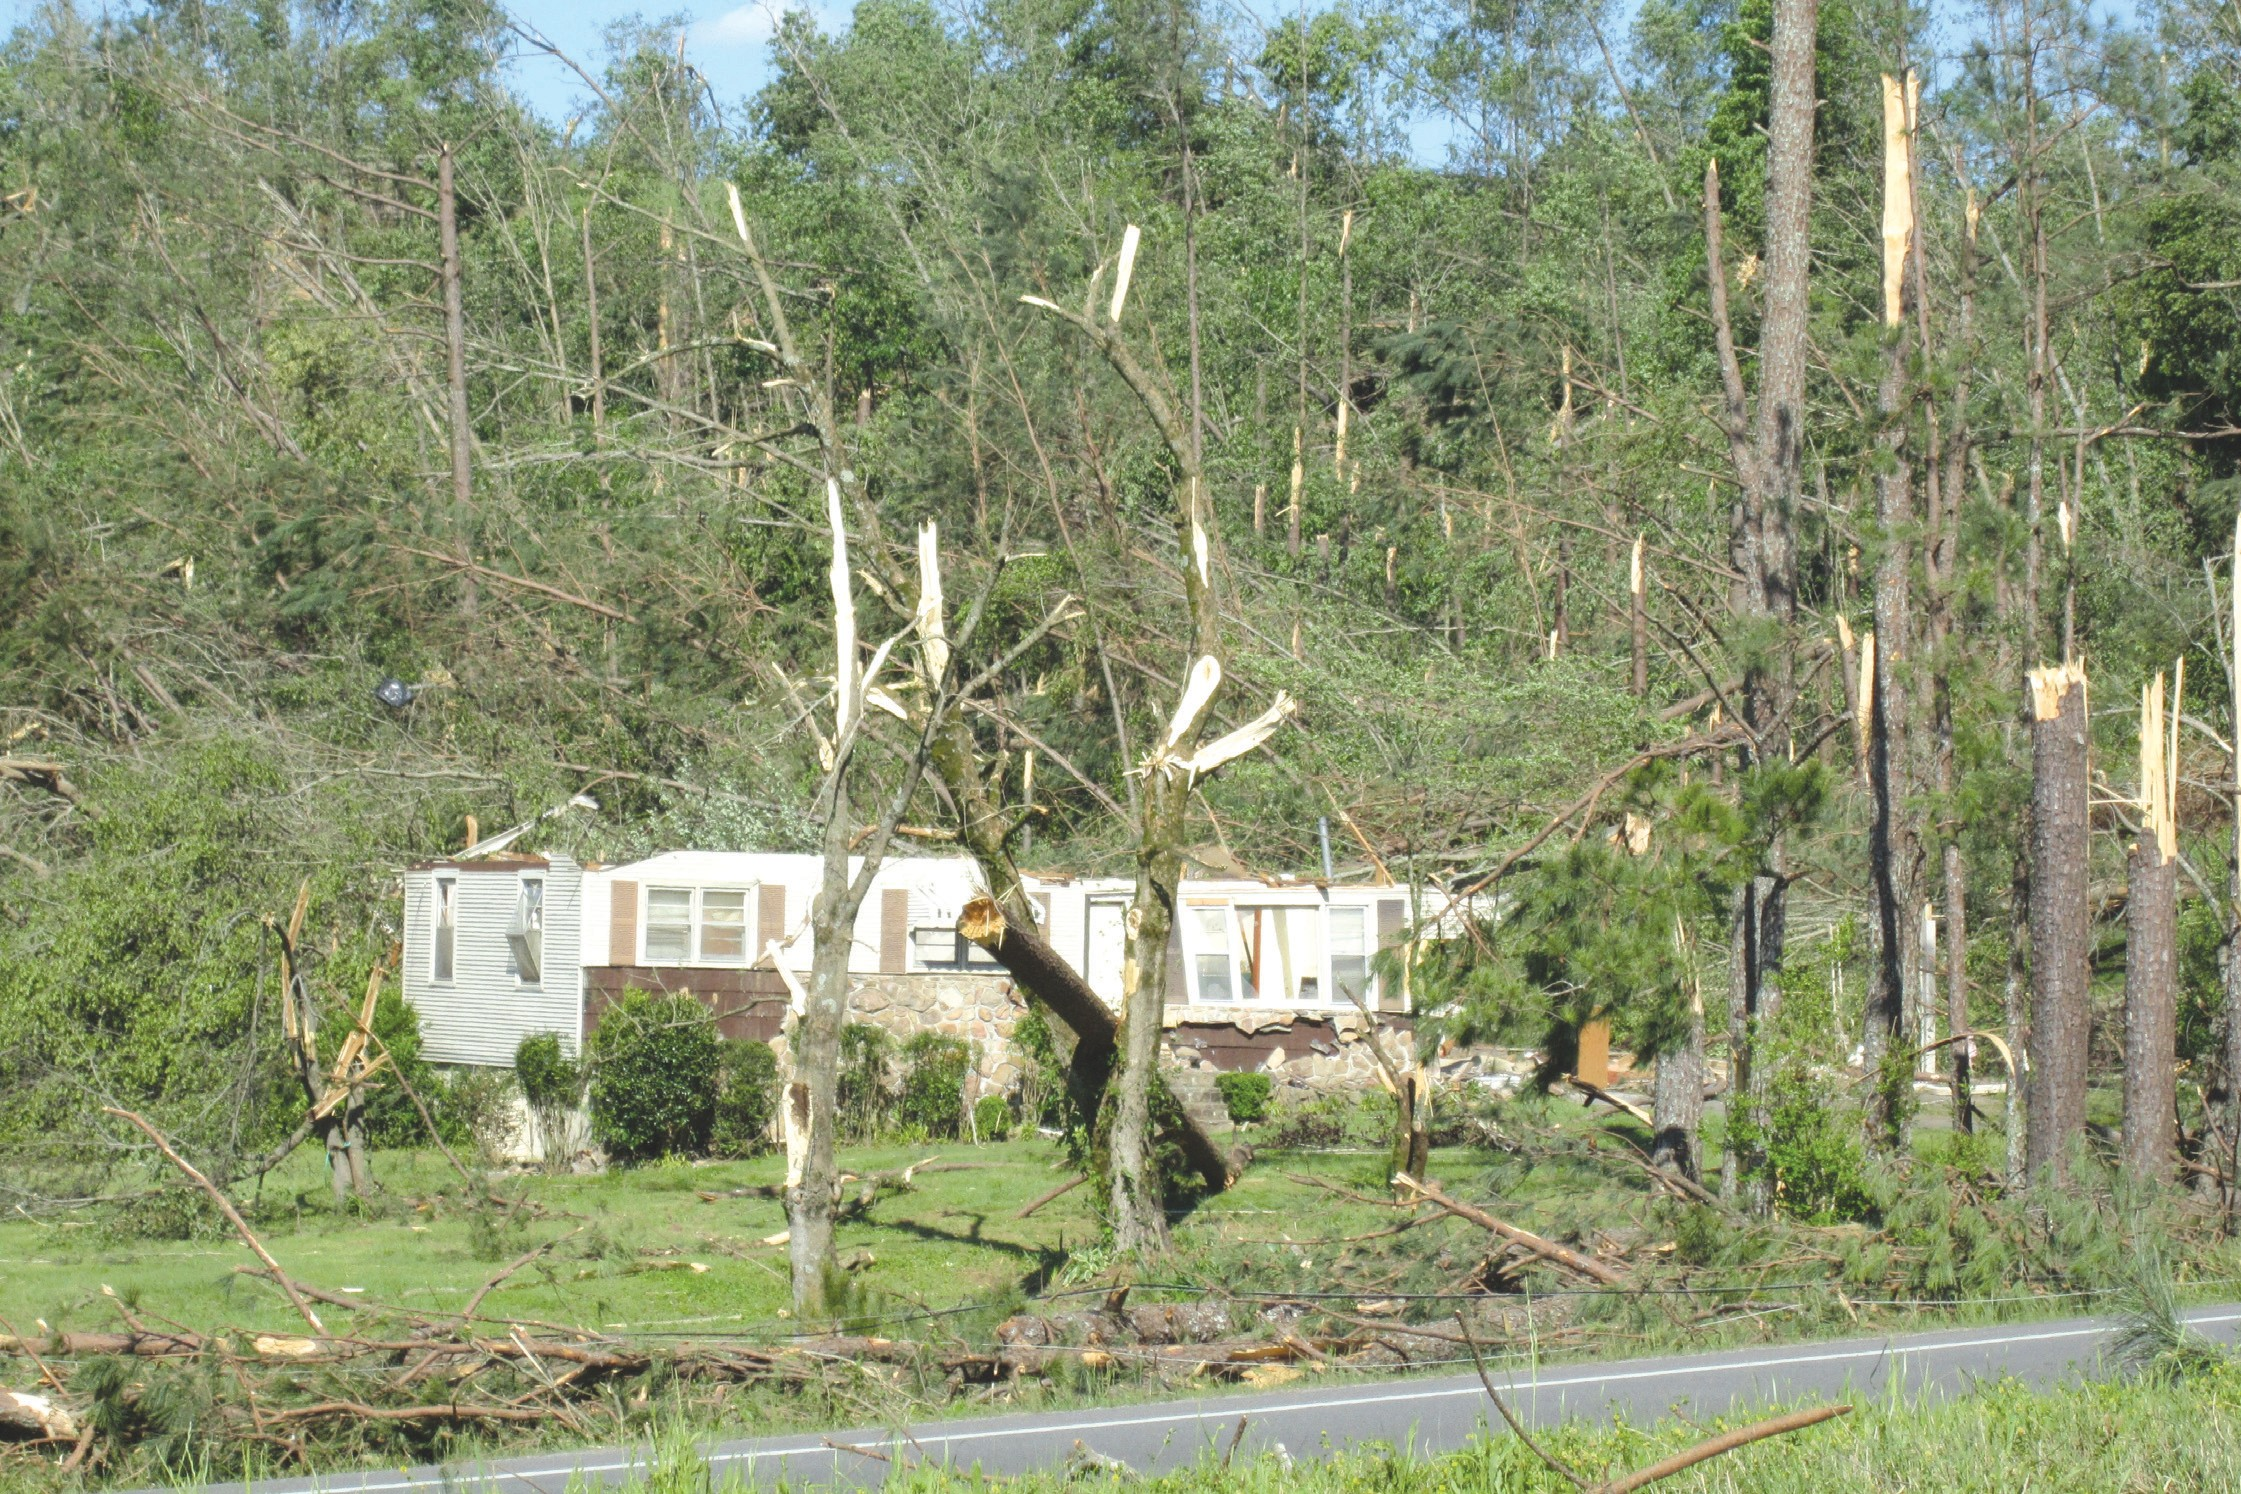 U.S. 278 near Brooksville; Tommy Murphy property was for sale and not occupied at time of storm.